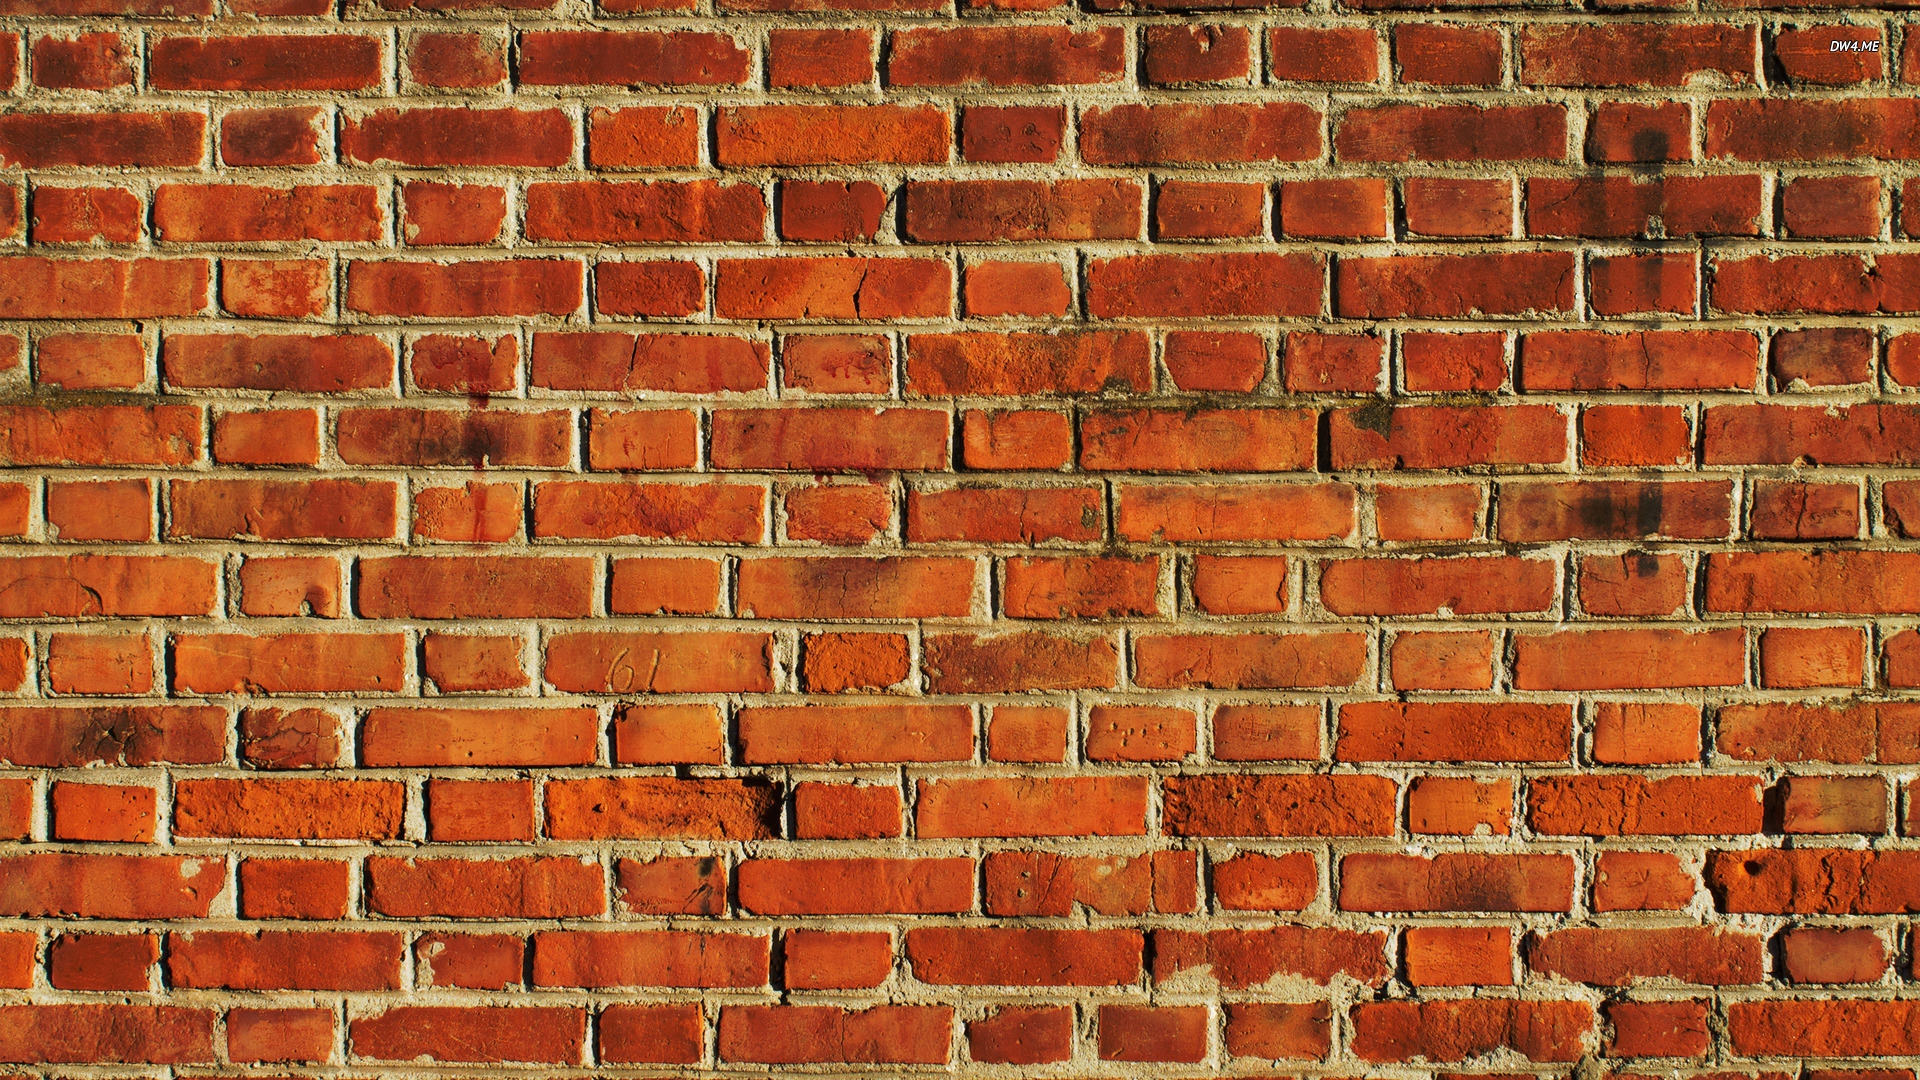 35 brick wall backgrounds psd vector eps jpg download - Wallpaper for walls images ...